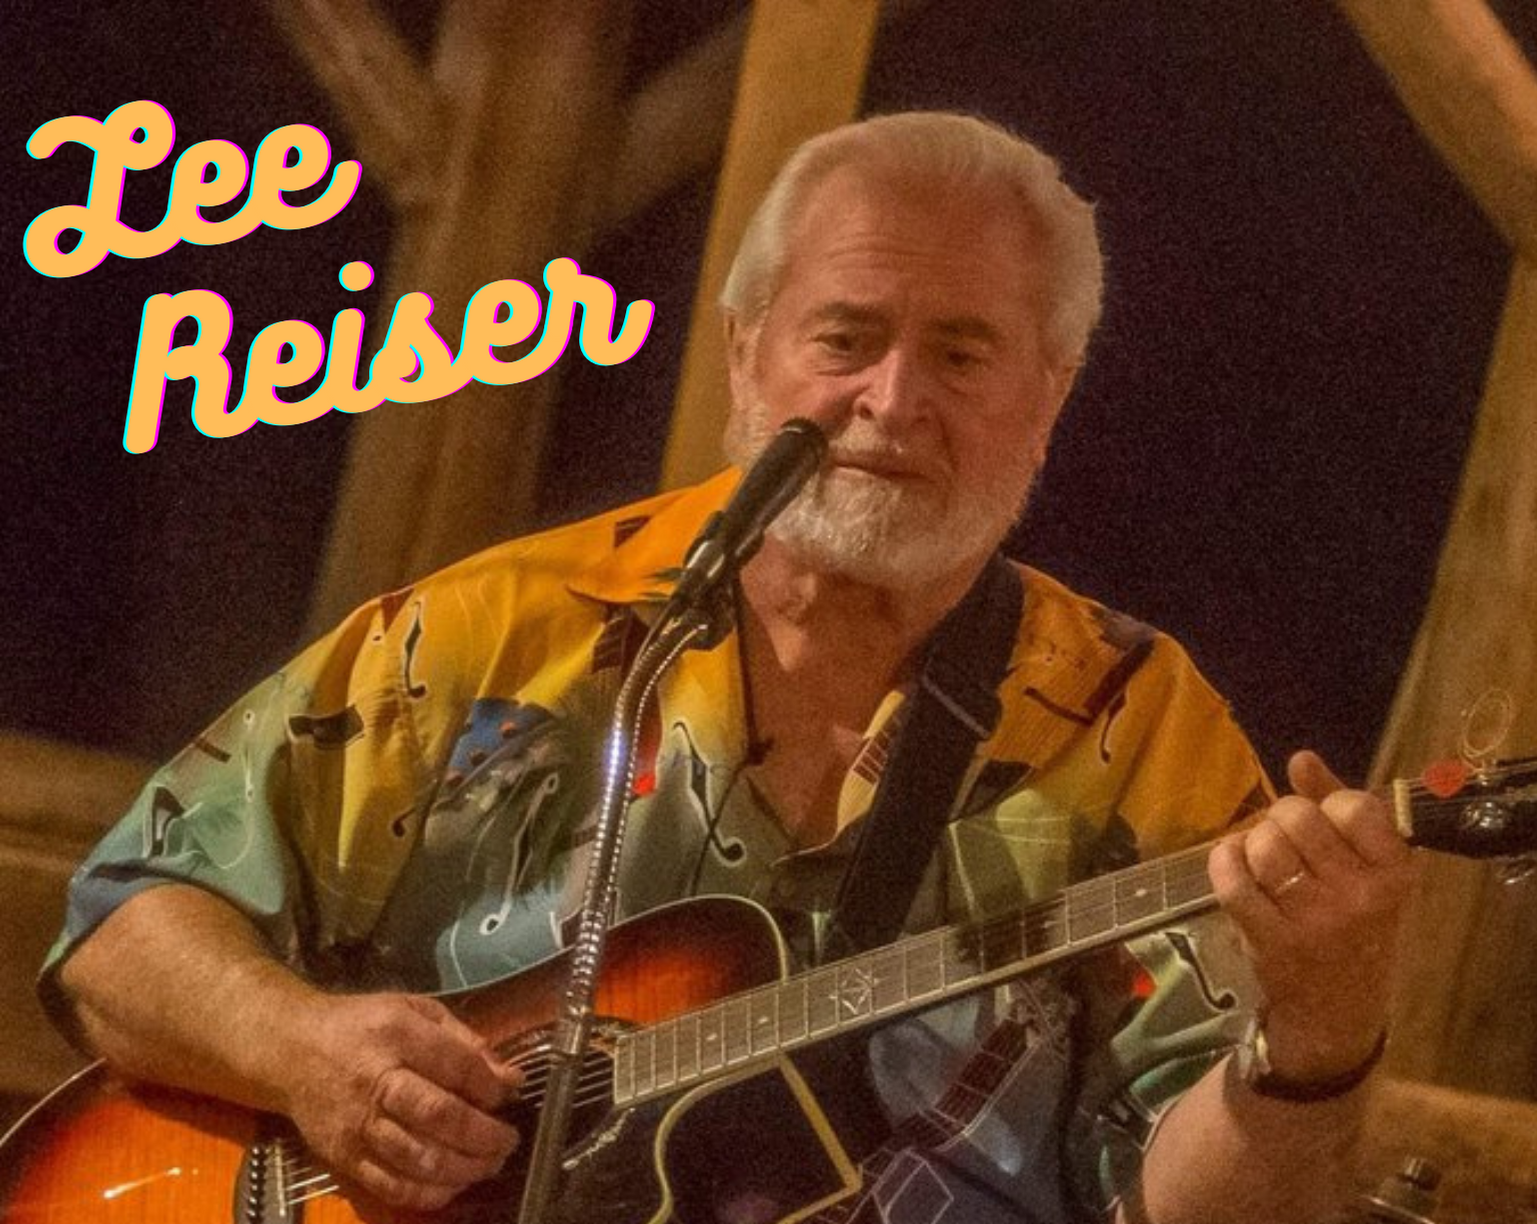 Friends of the Dobbs Ferry Library Annual Meeting feat. Concert by Lee Reiser